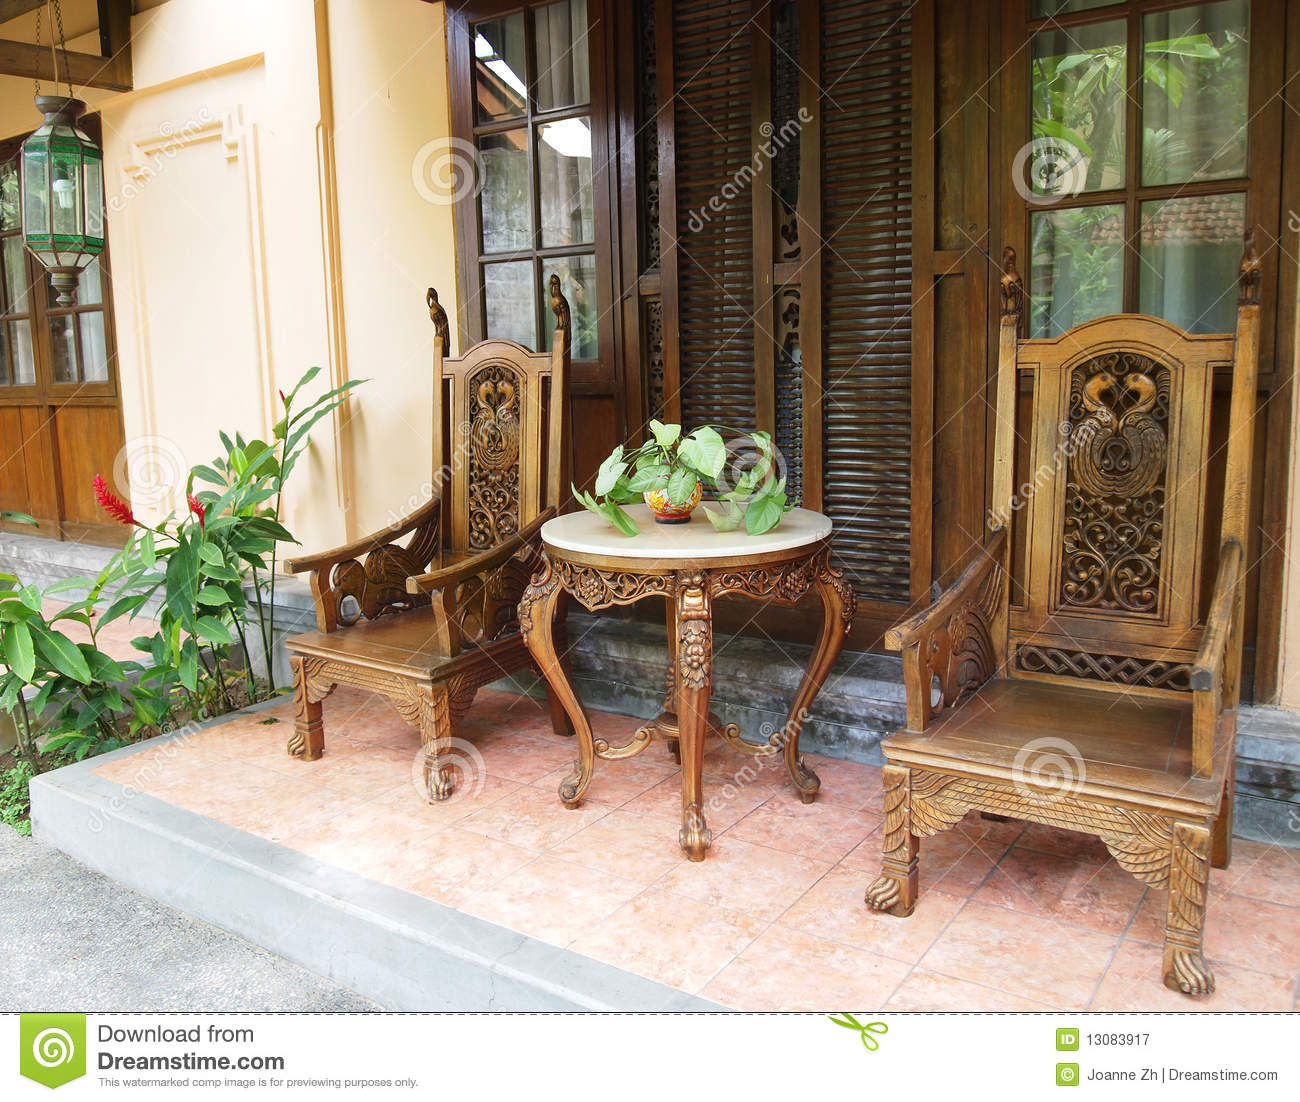 Balinese Furniture On Patio Royalty Free Stock Photography